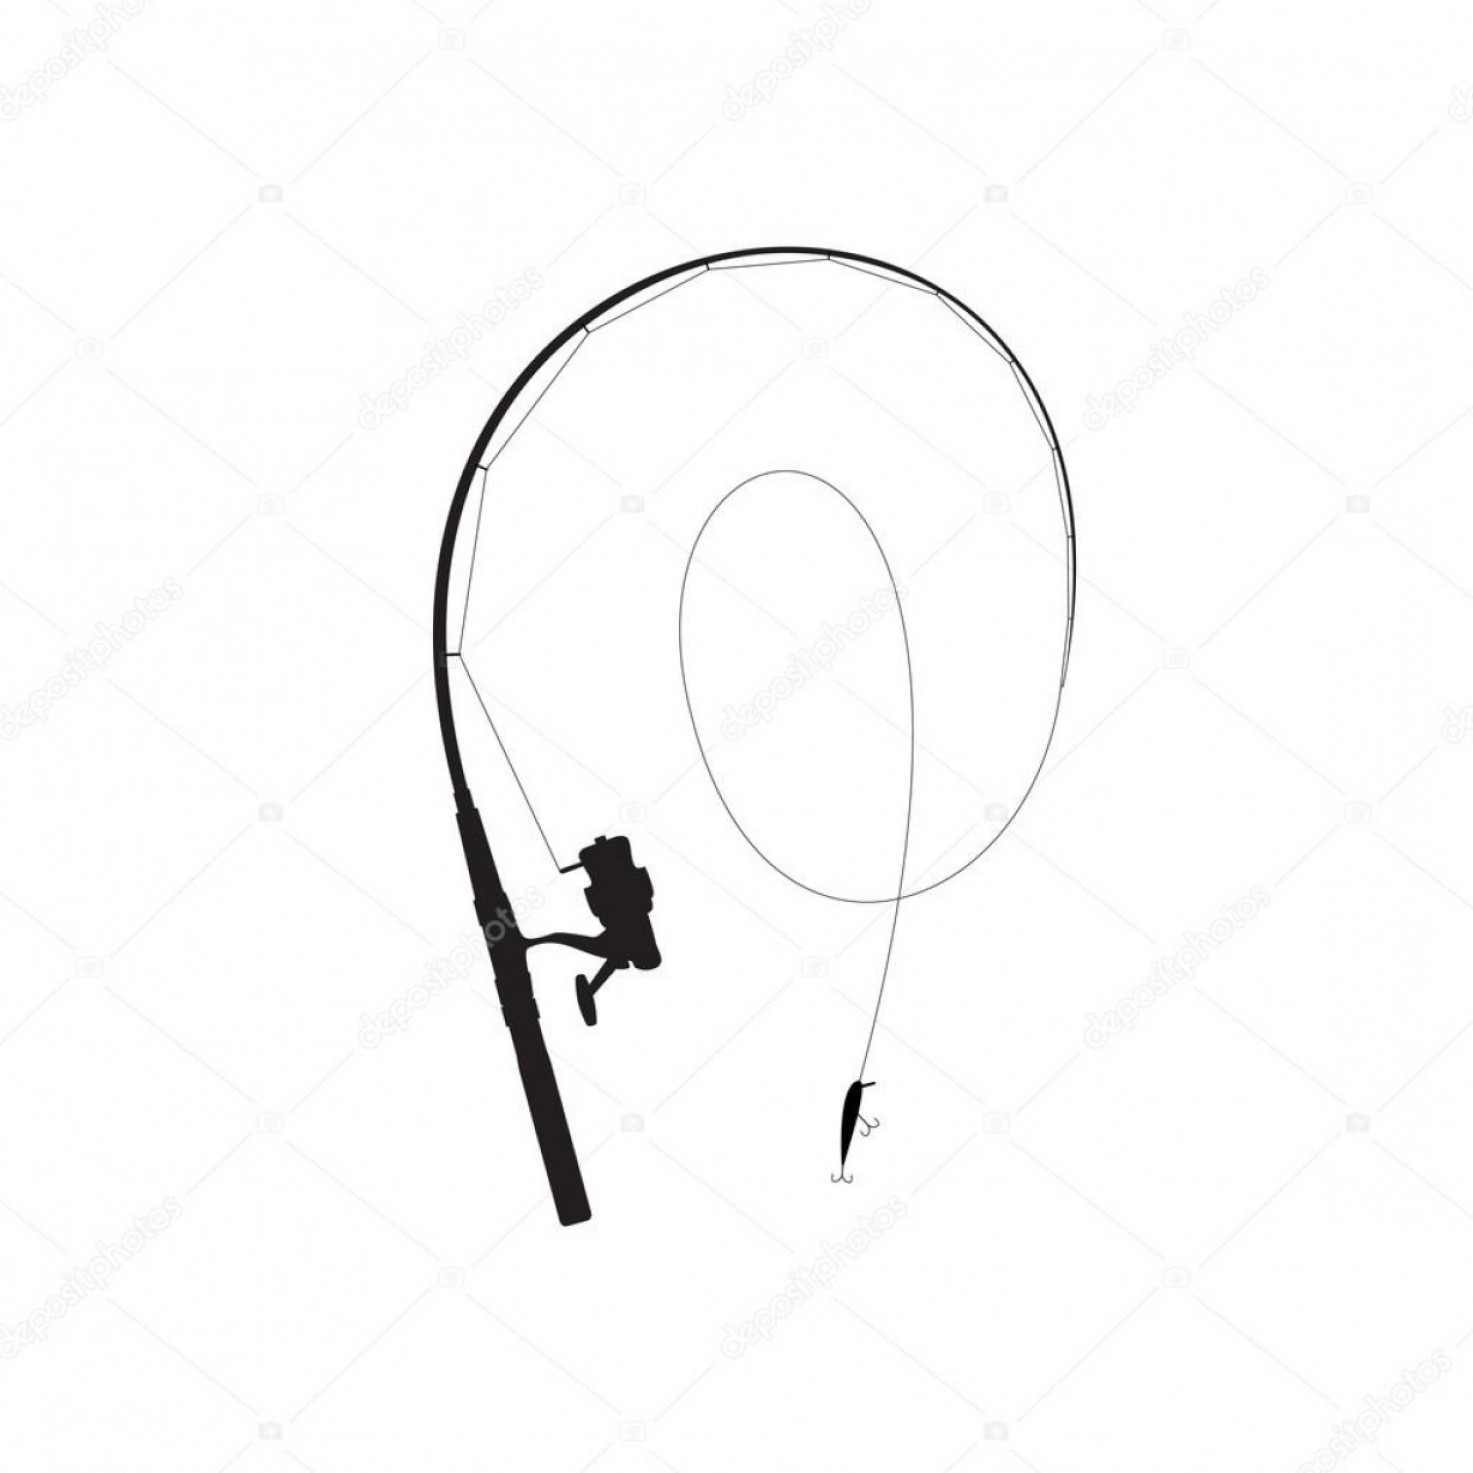 Fishing Pole Silhouette Vector: Stock Illustration Fishing Rod Black Silhouette